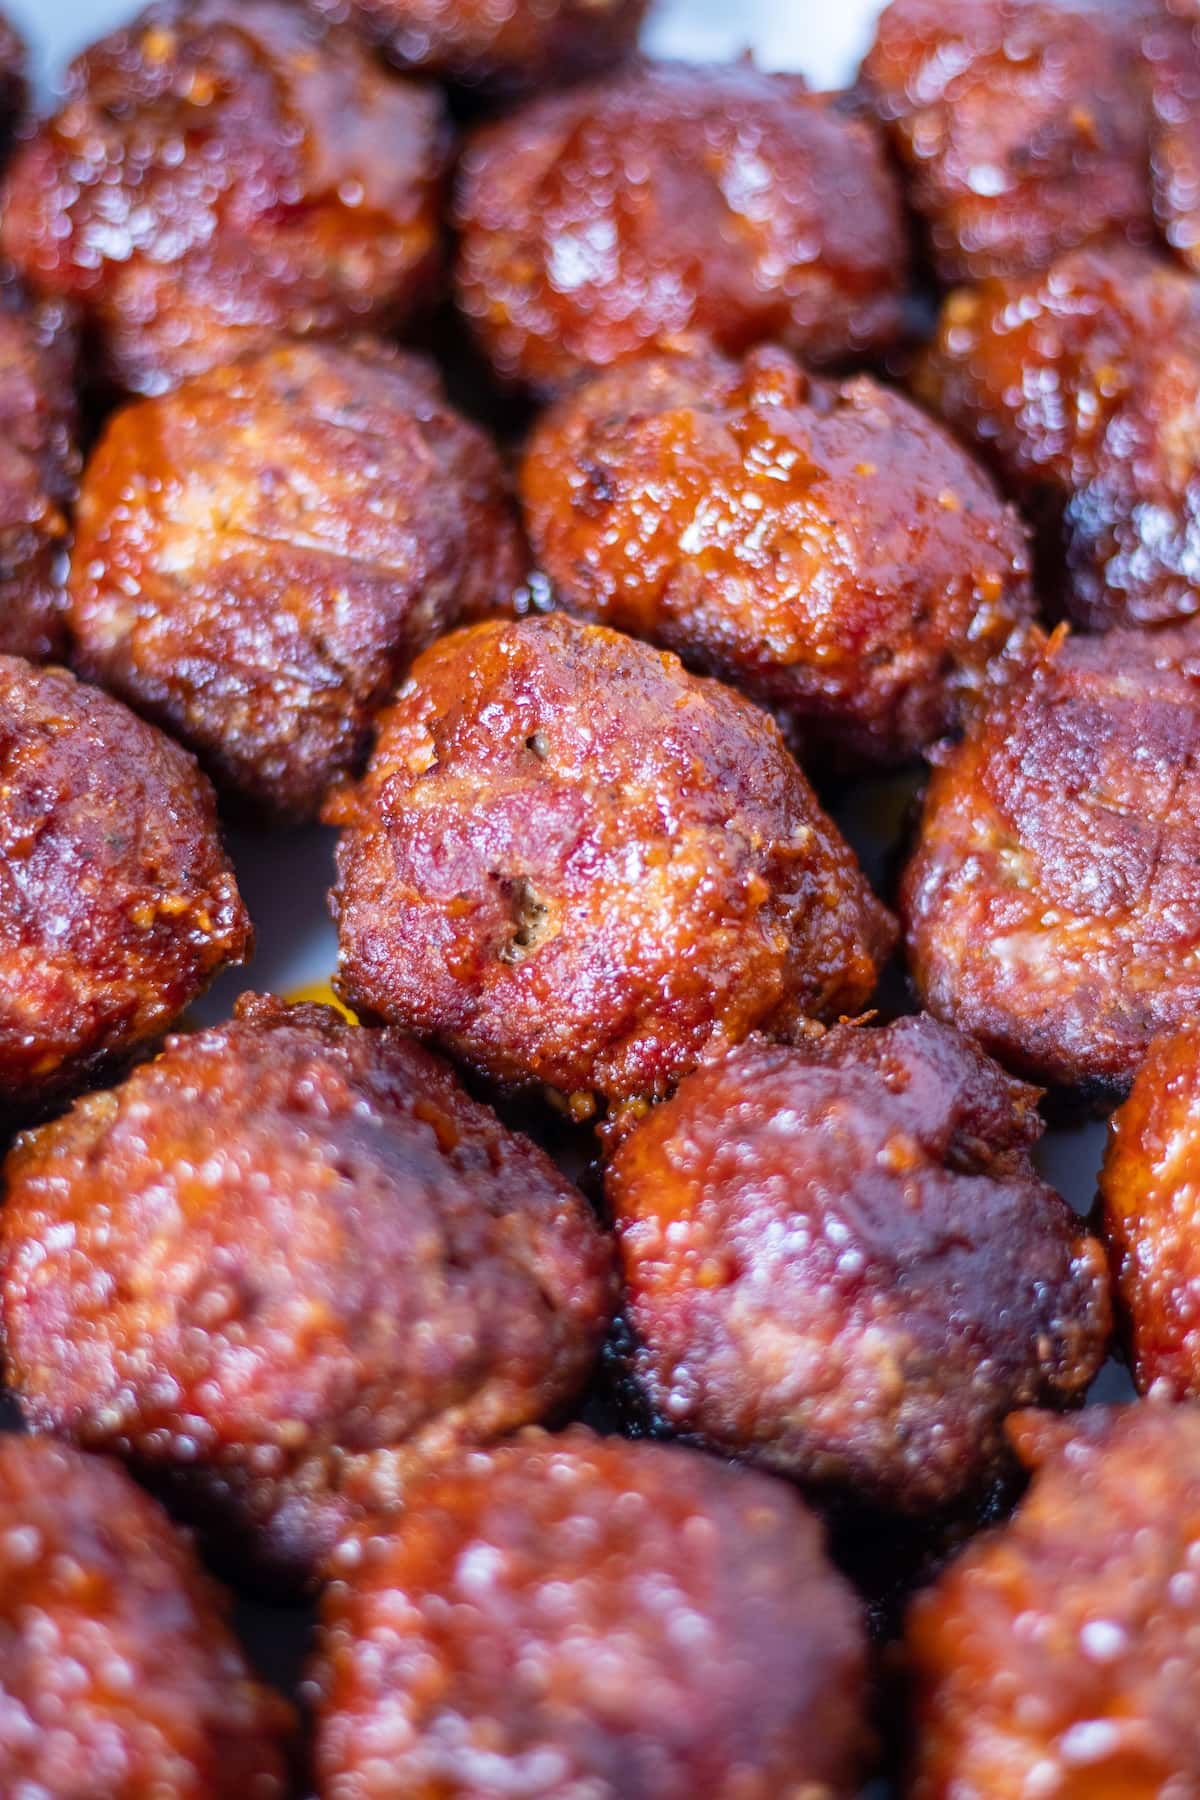 brilliantly red meatballs covered with sticky bbq sauce